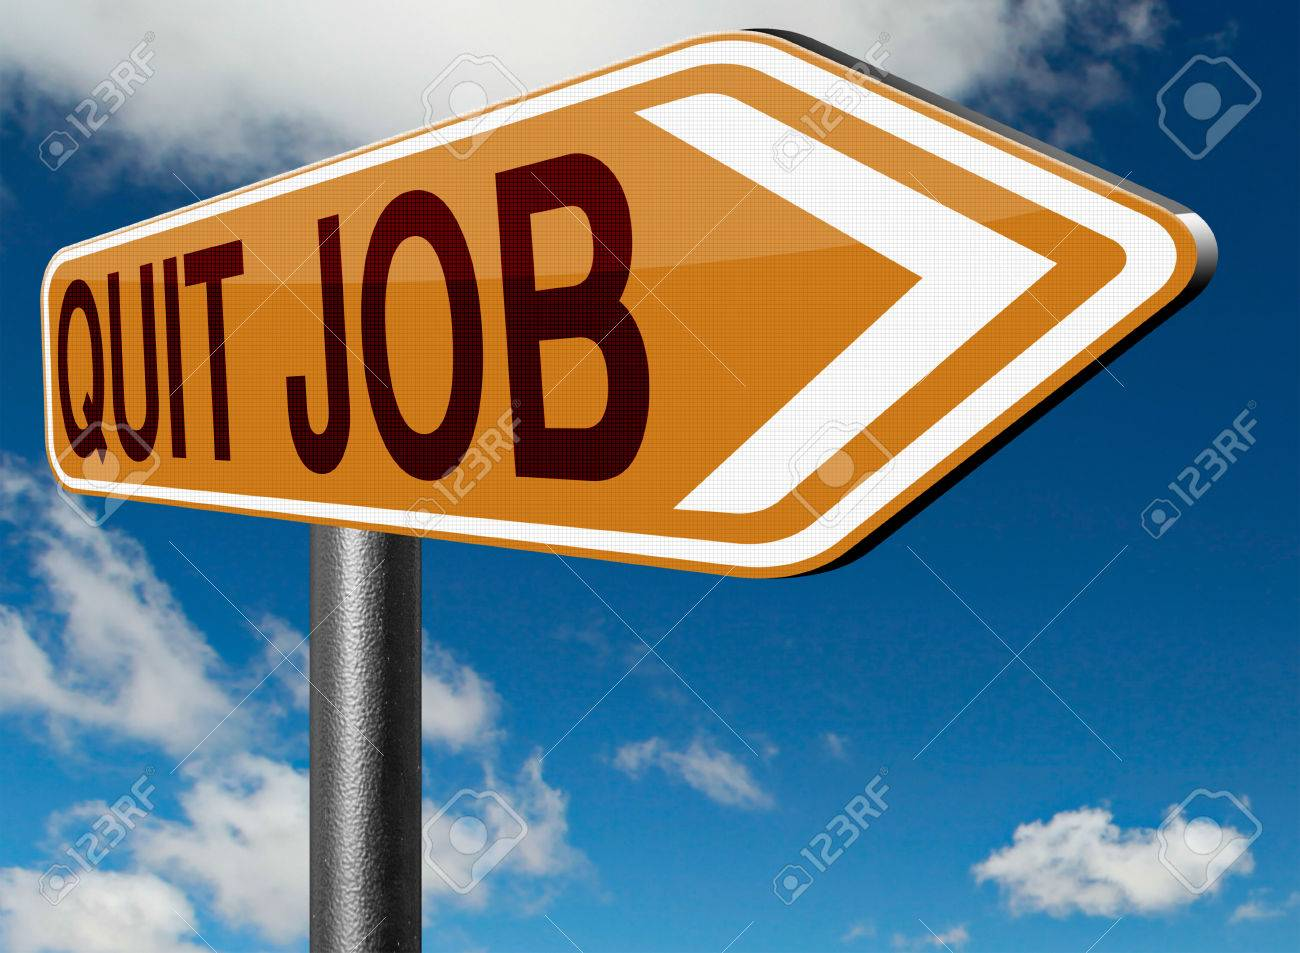 quit job career move road sign change profession resigning from stock photo quit job career move road sign change profession resigning from work and getting unemployed